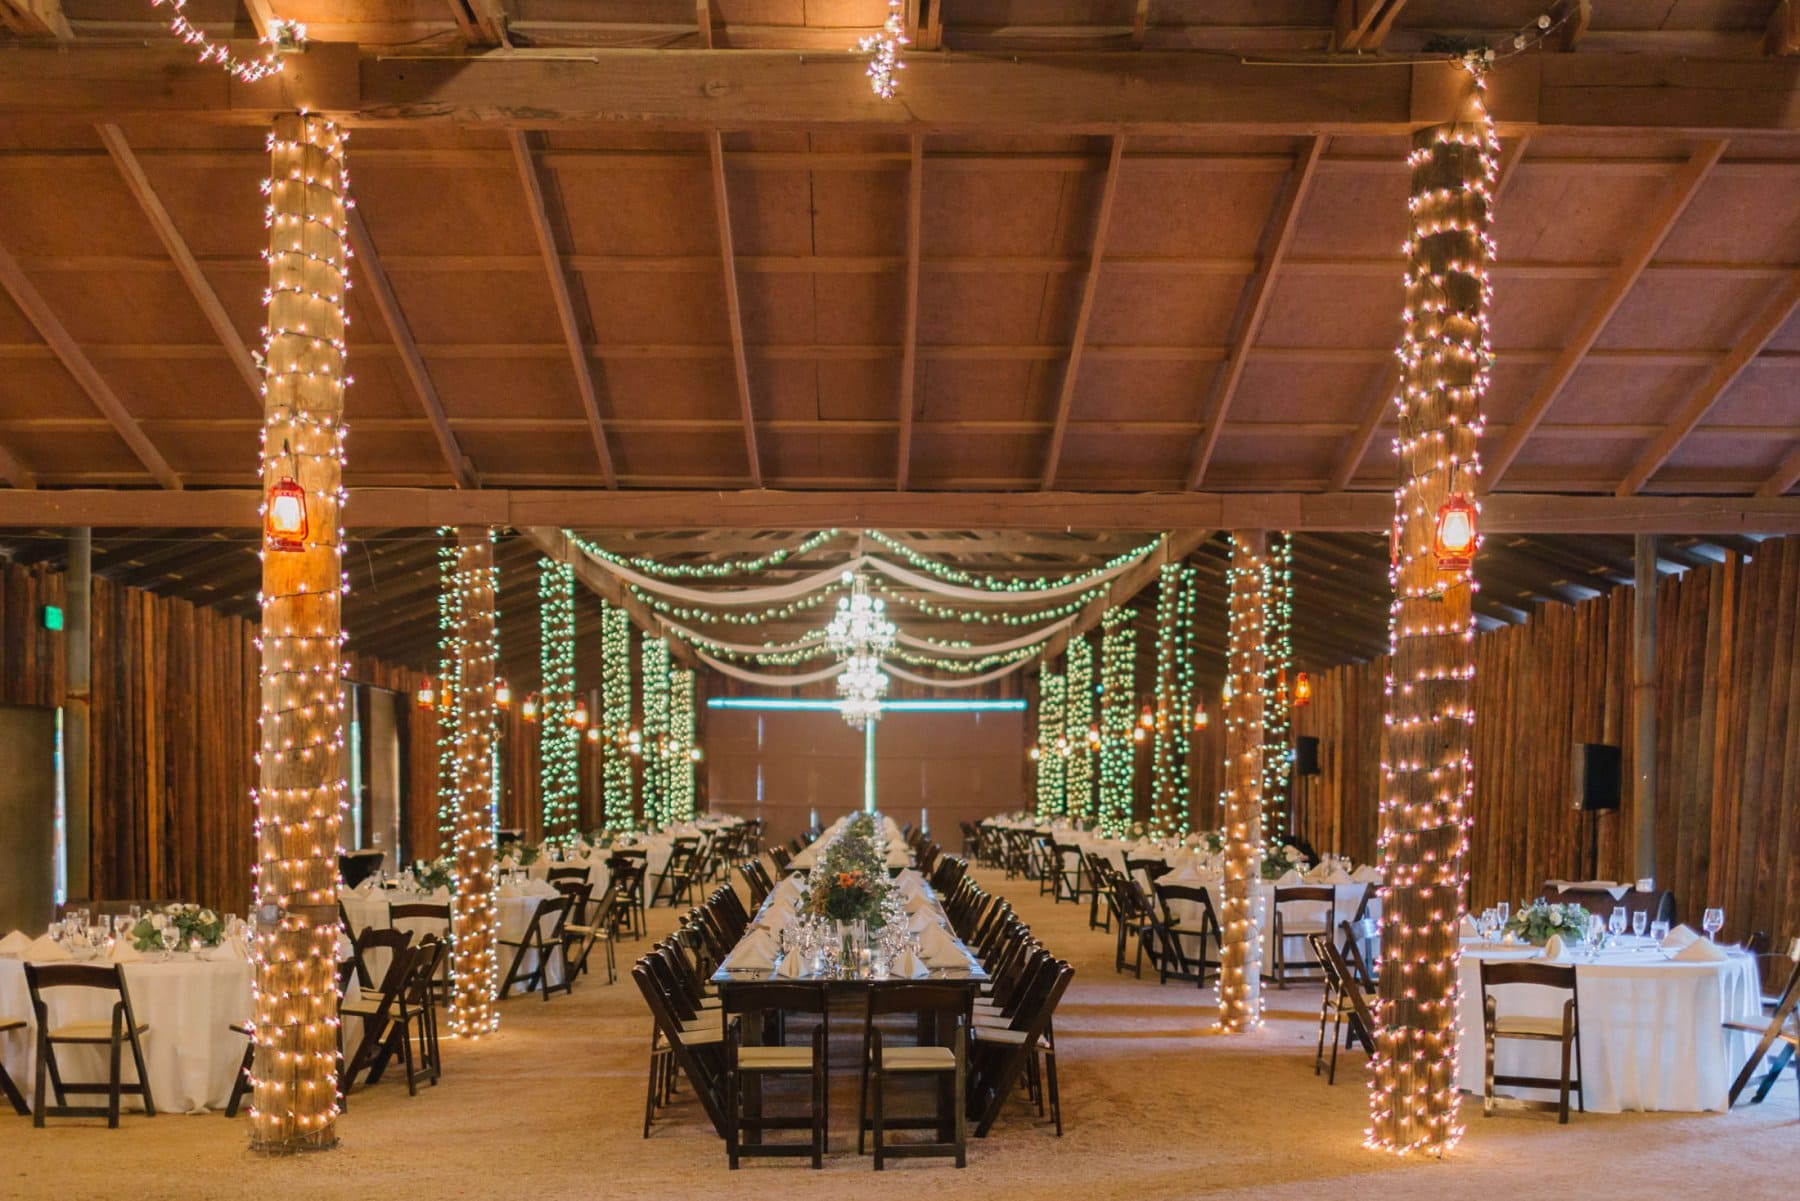 Desert Foothills reception with long farm tables and smaller round tables